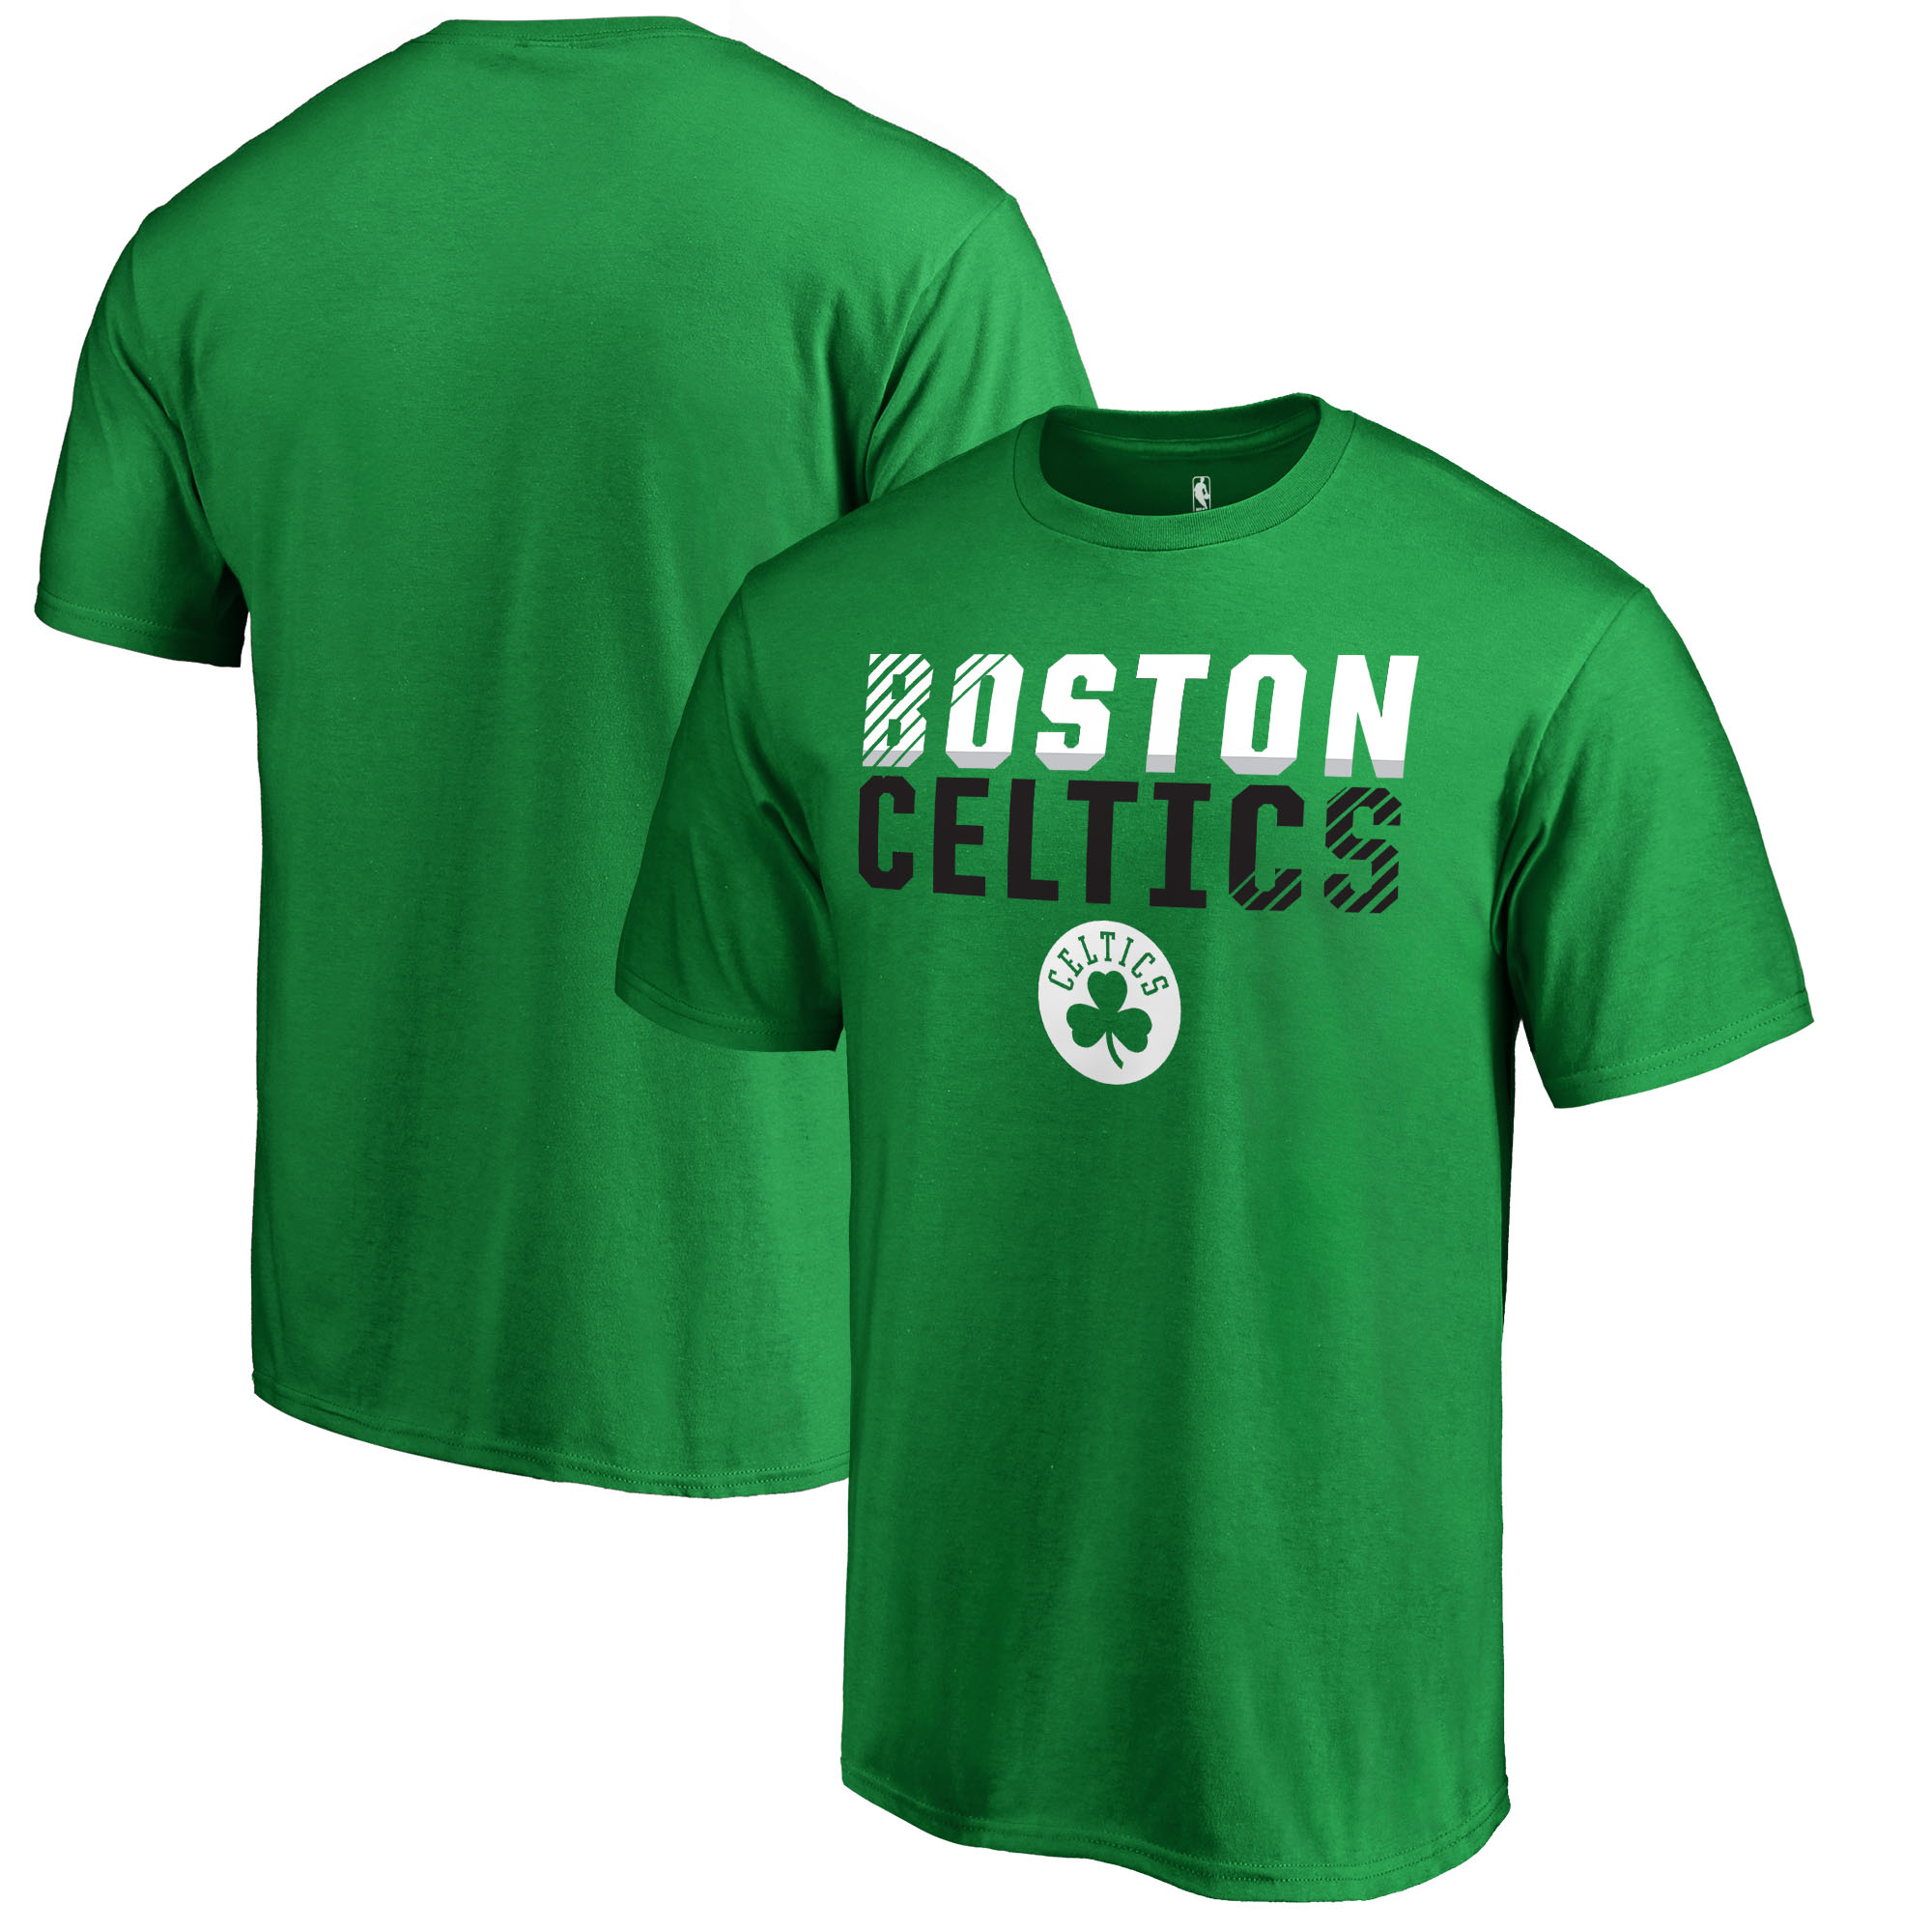 ca5a801422f Boston Celtics Team Shop - Walmart.com